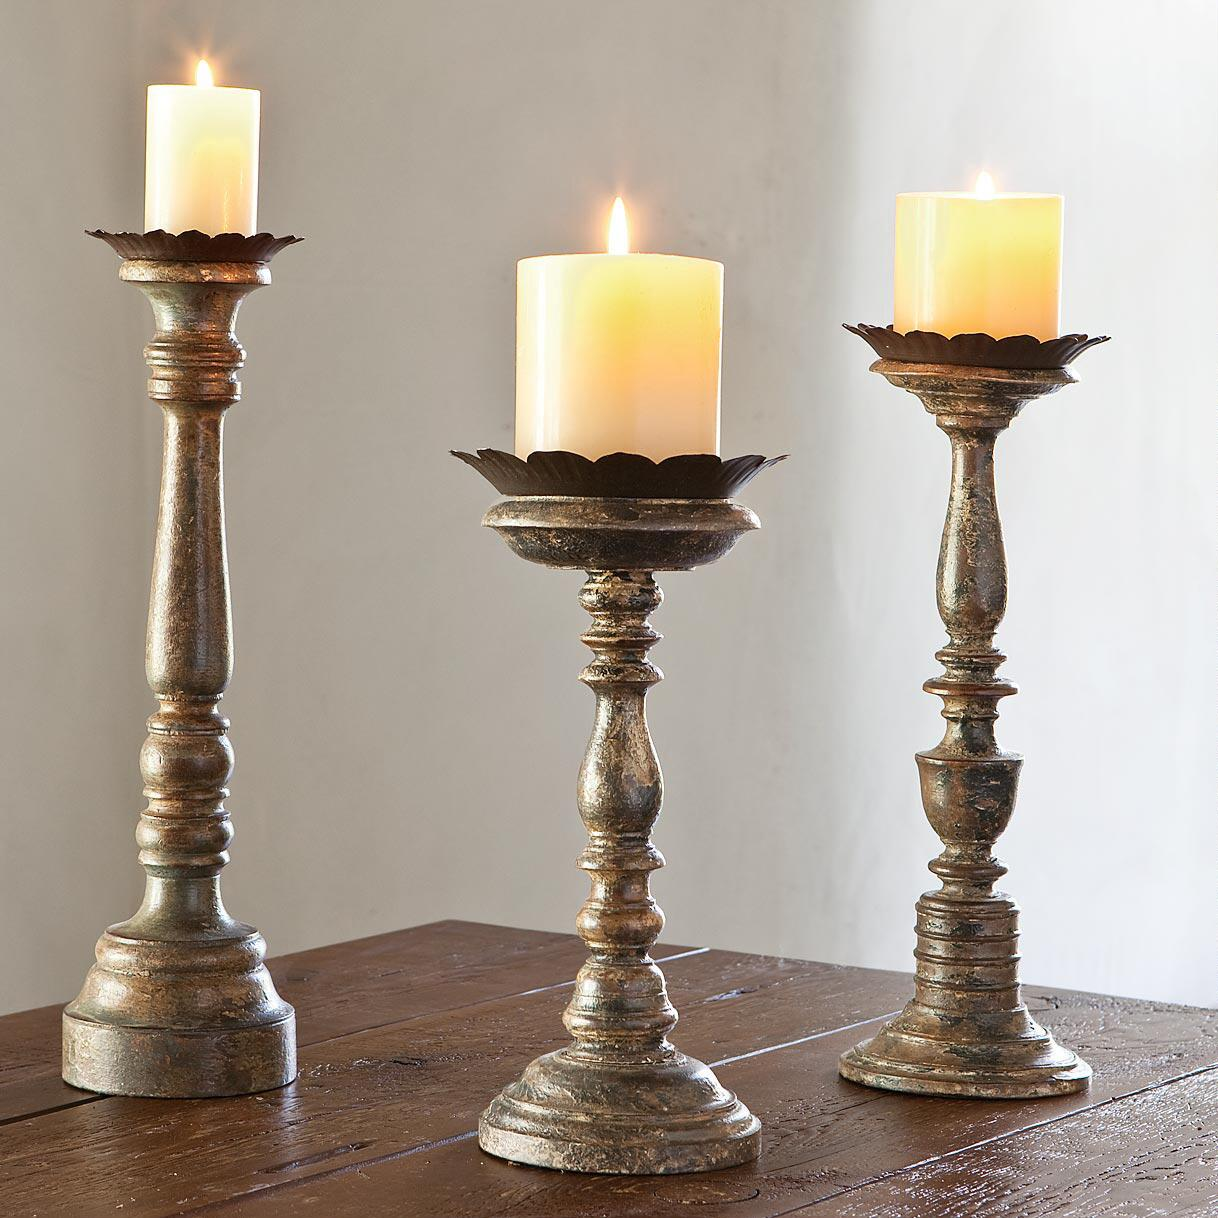 ARTISAN CANDLEHOLDERS: View 1